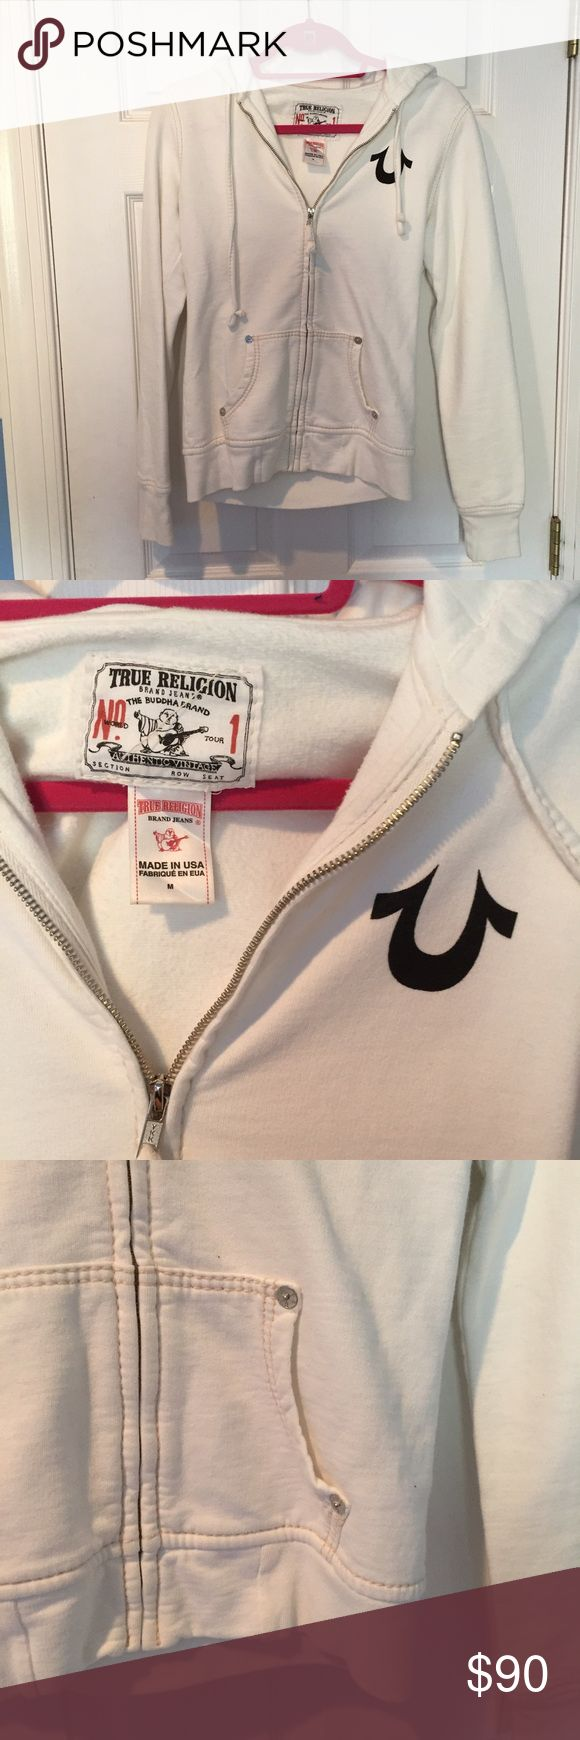 True Religion white zip up True Religion white zip up track jacket, size medium. Only worn once! Very comfy. True Religion Tops Sweatshirts & Hoodies